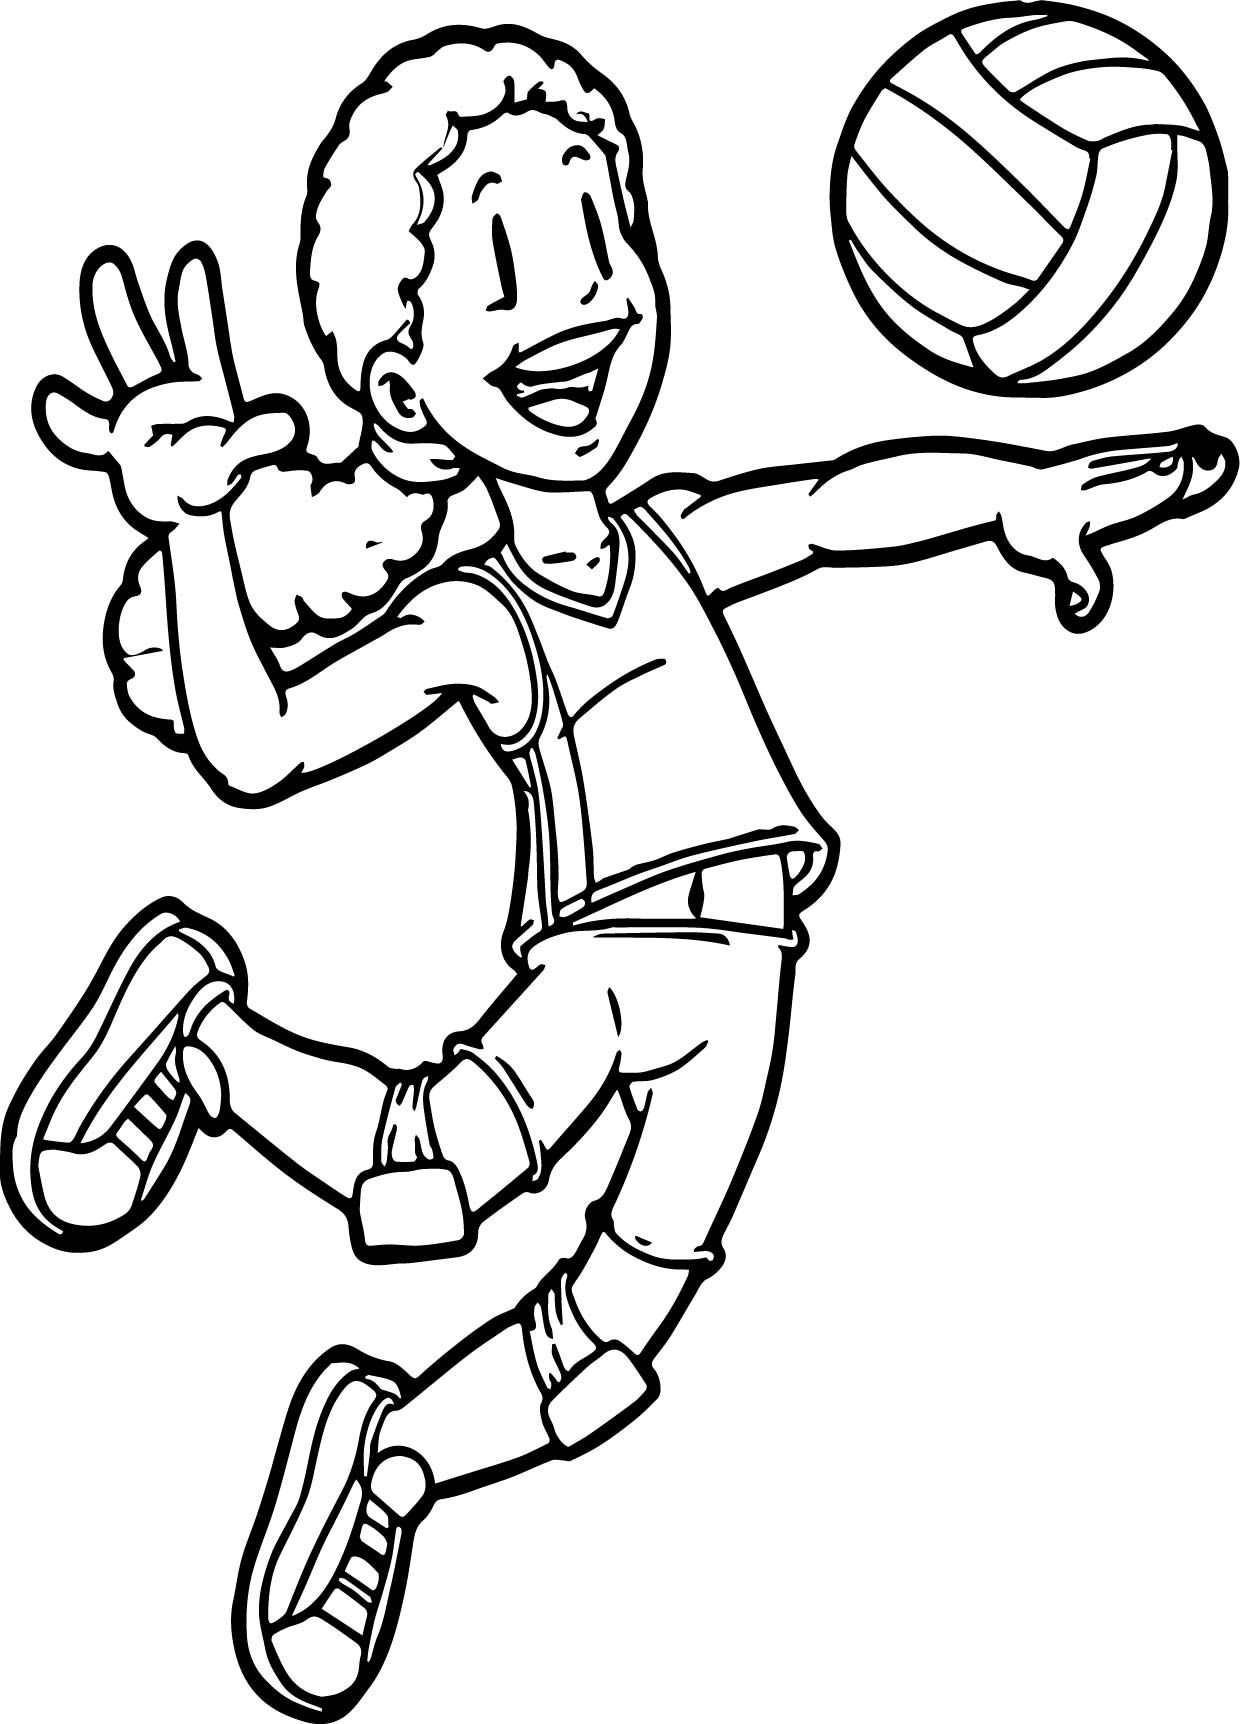 Awesome Kids Playing Sports Volleyball Coloring Page Sports Coloring Pages Baseball Coloring Pages Kids Playing Sports